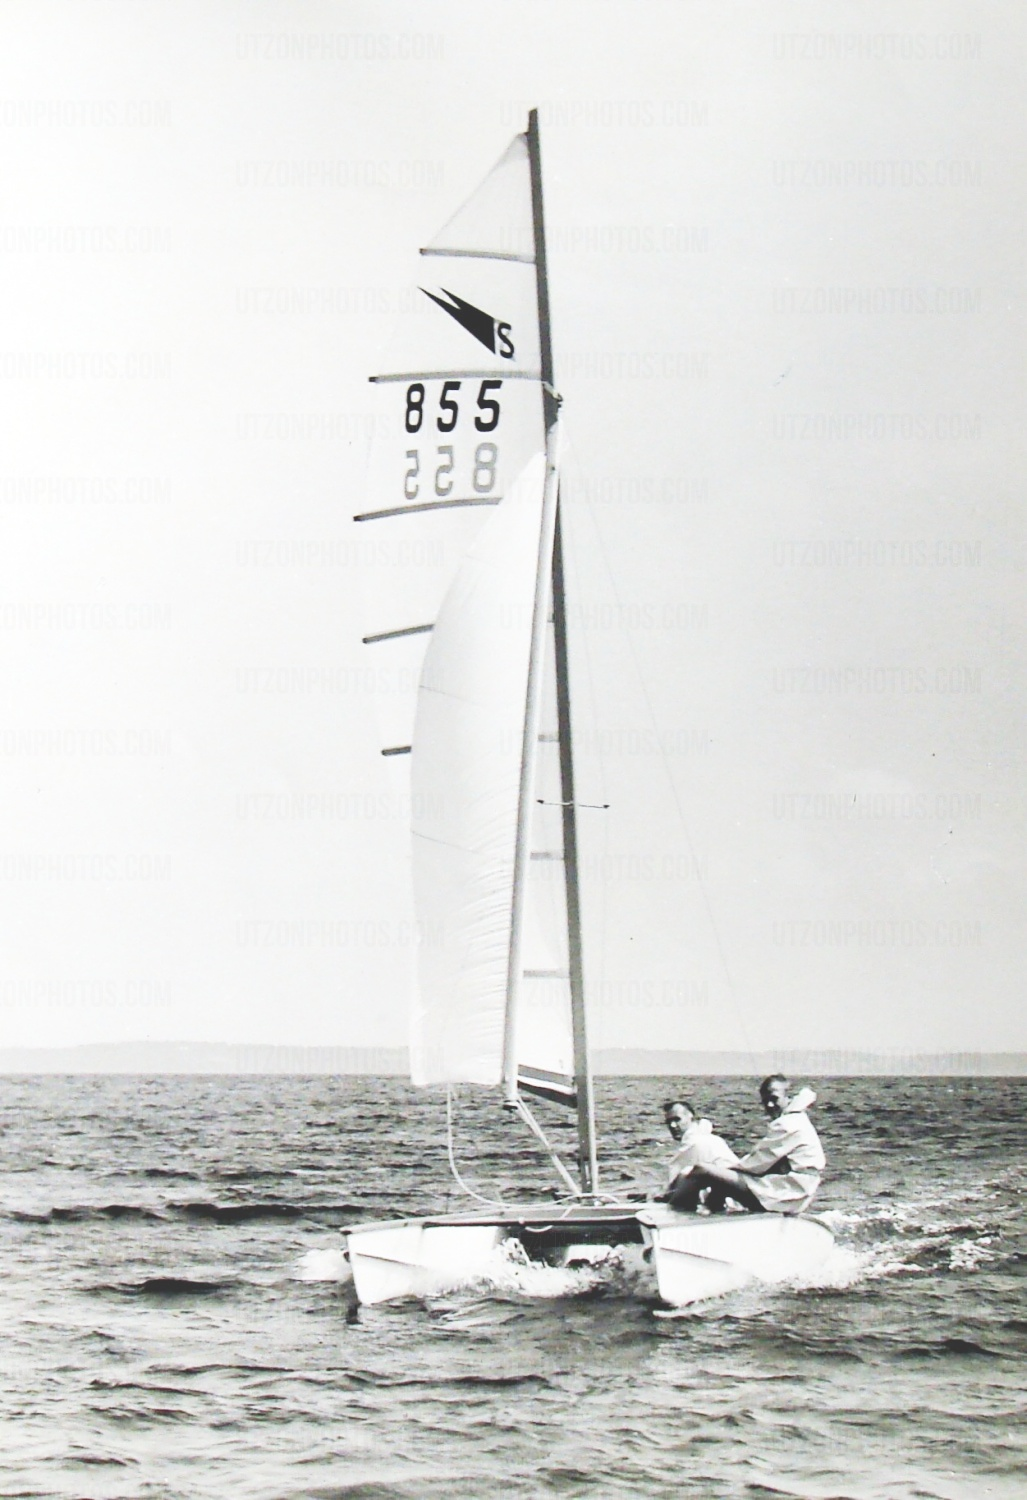 Jorn and Jan Utzon - Shearwater catamaran 1960